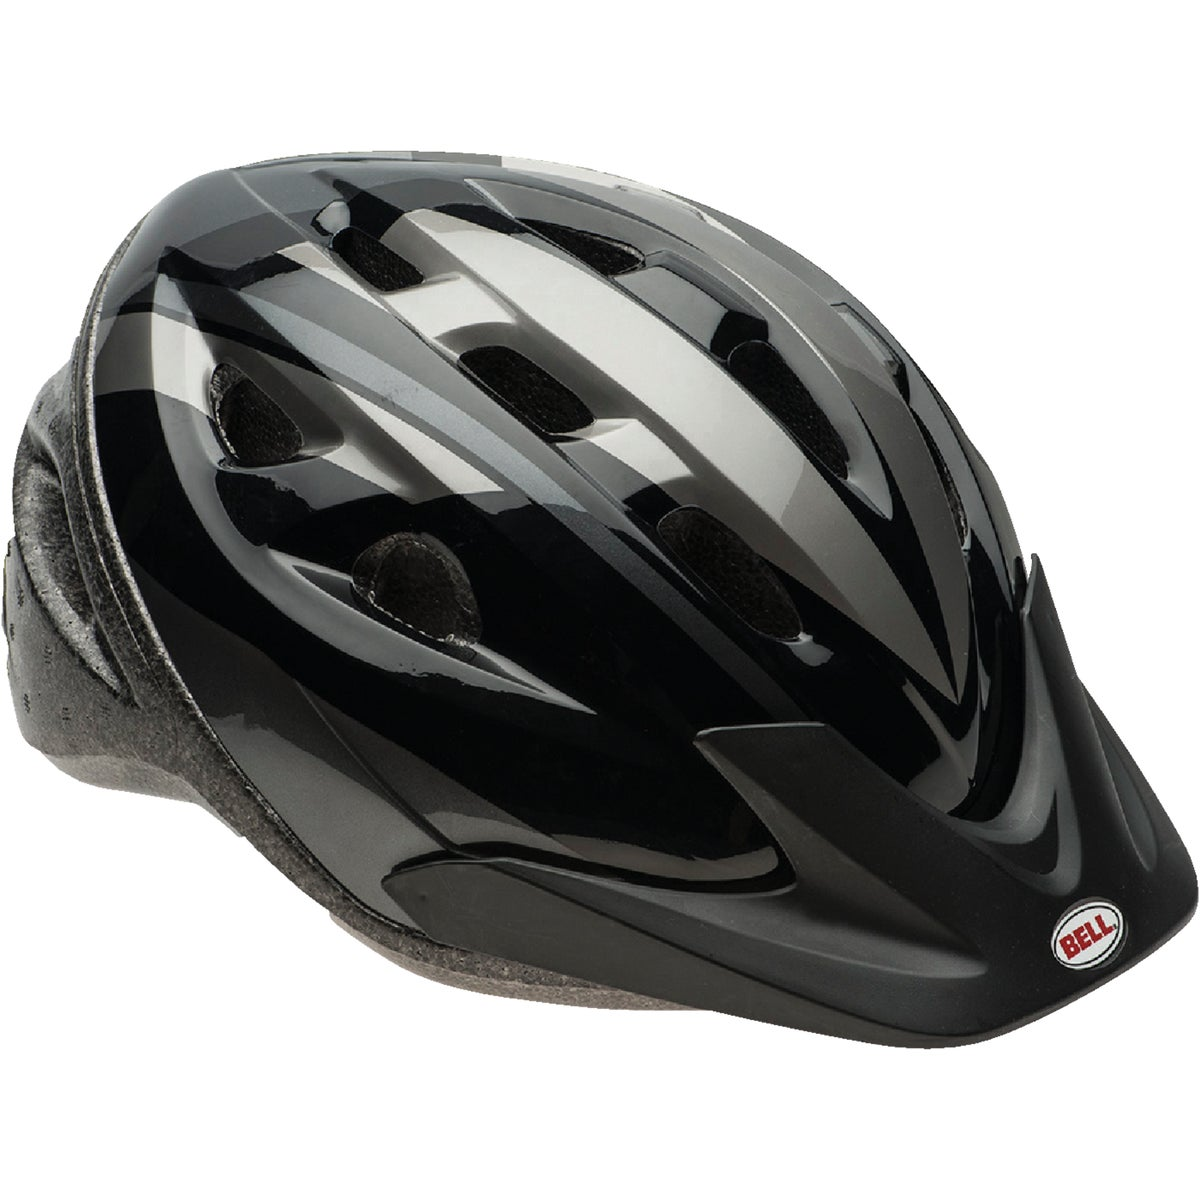 14+ M/L ADULT HELMET - 7021146 by Bell Sports